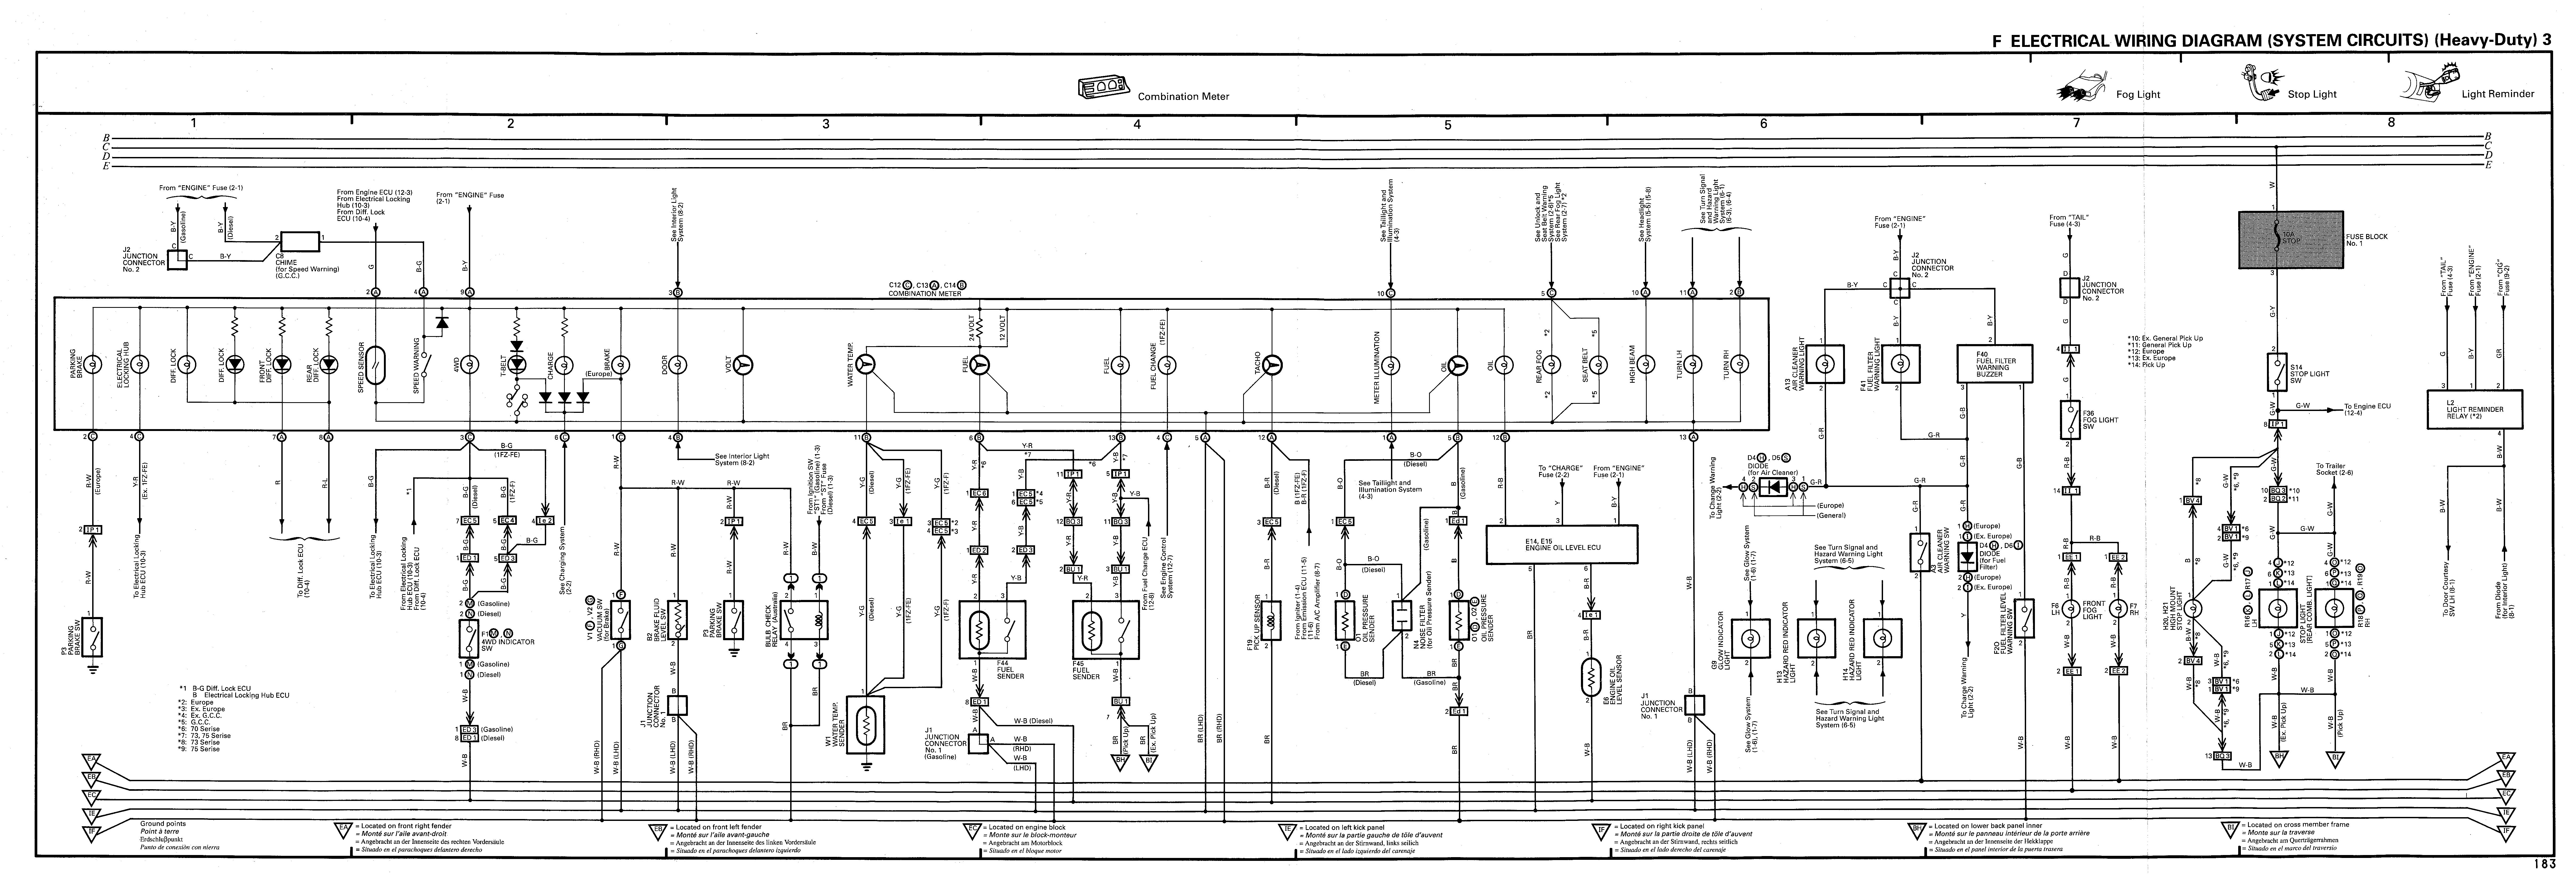 Old Fashioned 2006 Sequoia Stereo Wiring Diagram Photos - Wiring ...